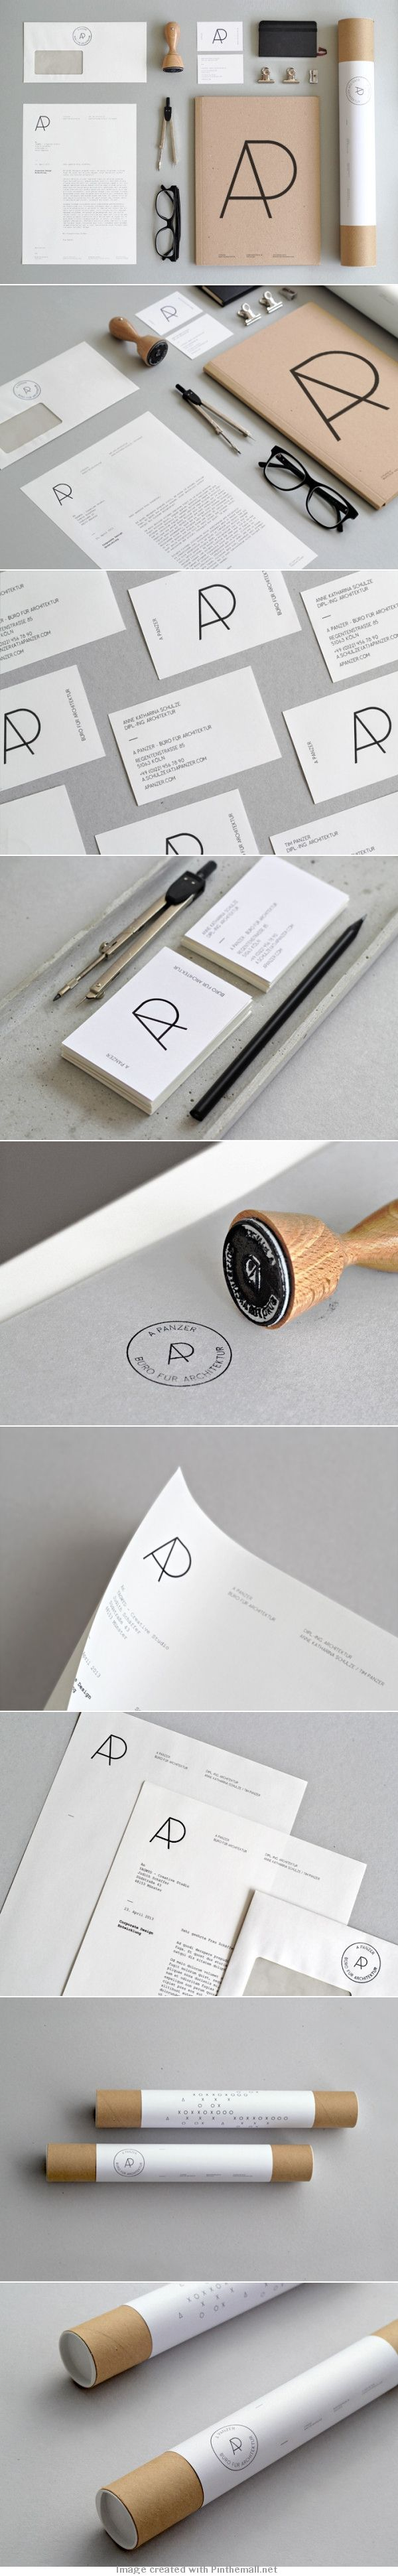 logo corporate branding visual graphic identity kraft paper design business card label black white print sticker minimal stamp Business Card Free Design http://www.plasticcardonline.com